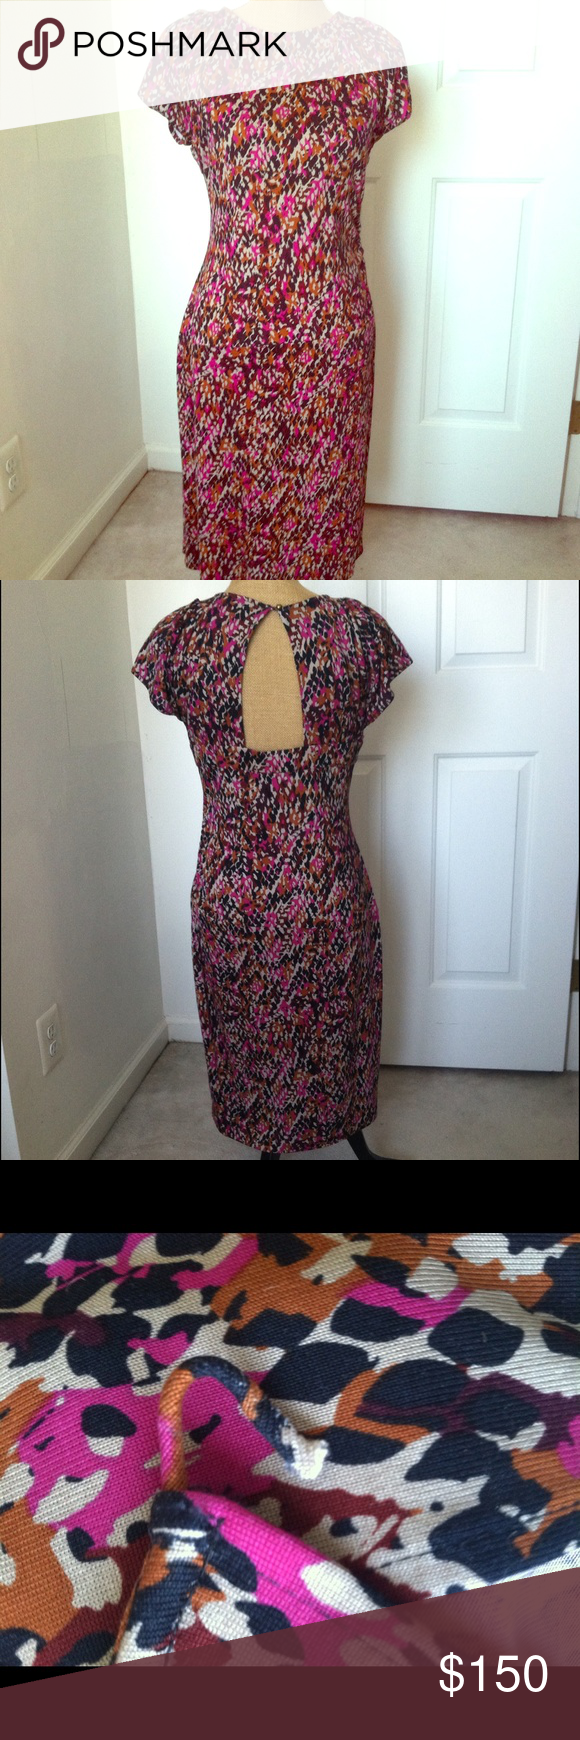 Diane von Furstenberg DVF Thane Silk Dress DVF Thane silk dress in Red Serpent print. Cutout back detail. Side ruching. Cap sleeves. 100% silk jersey. Back button loop needs to be reattached. See pic. Diane von Furstenberg Dresses